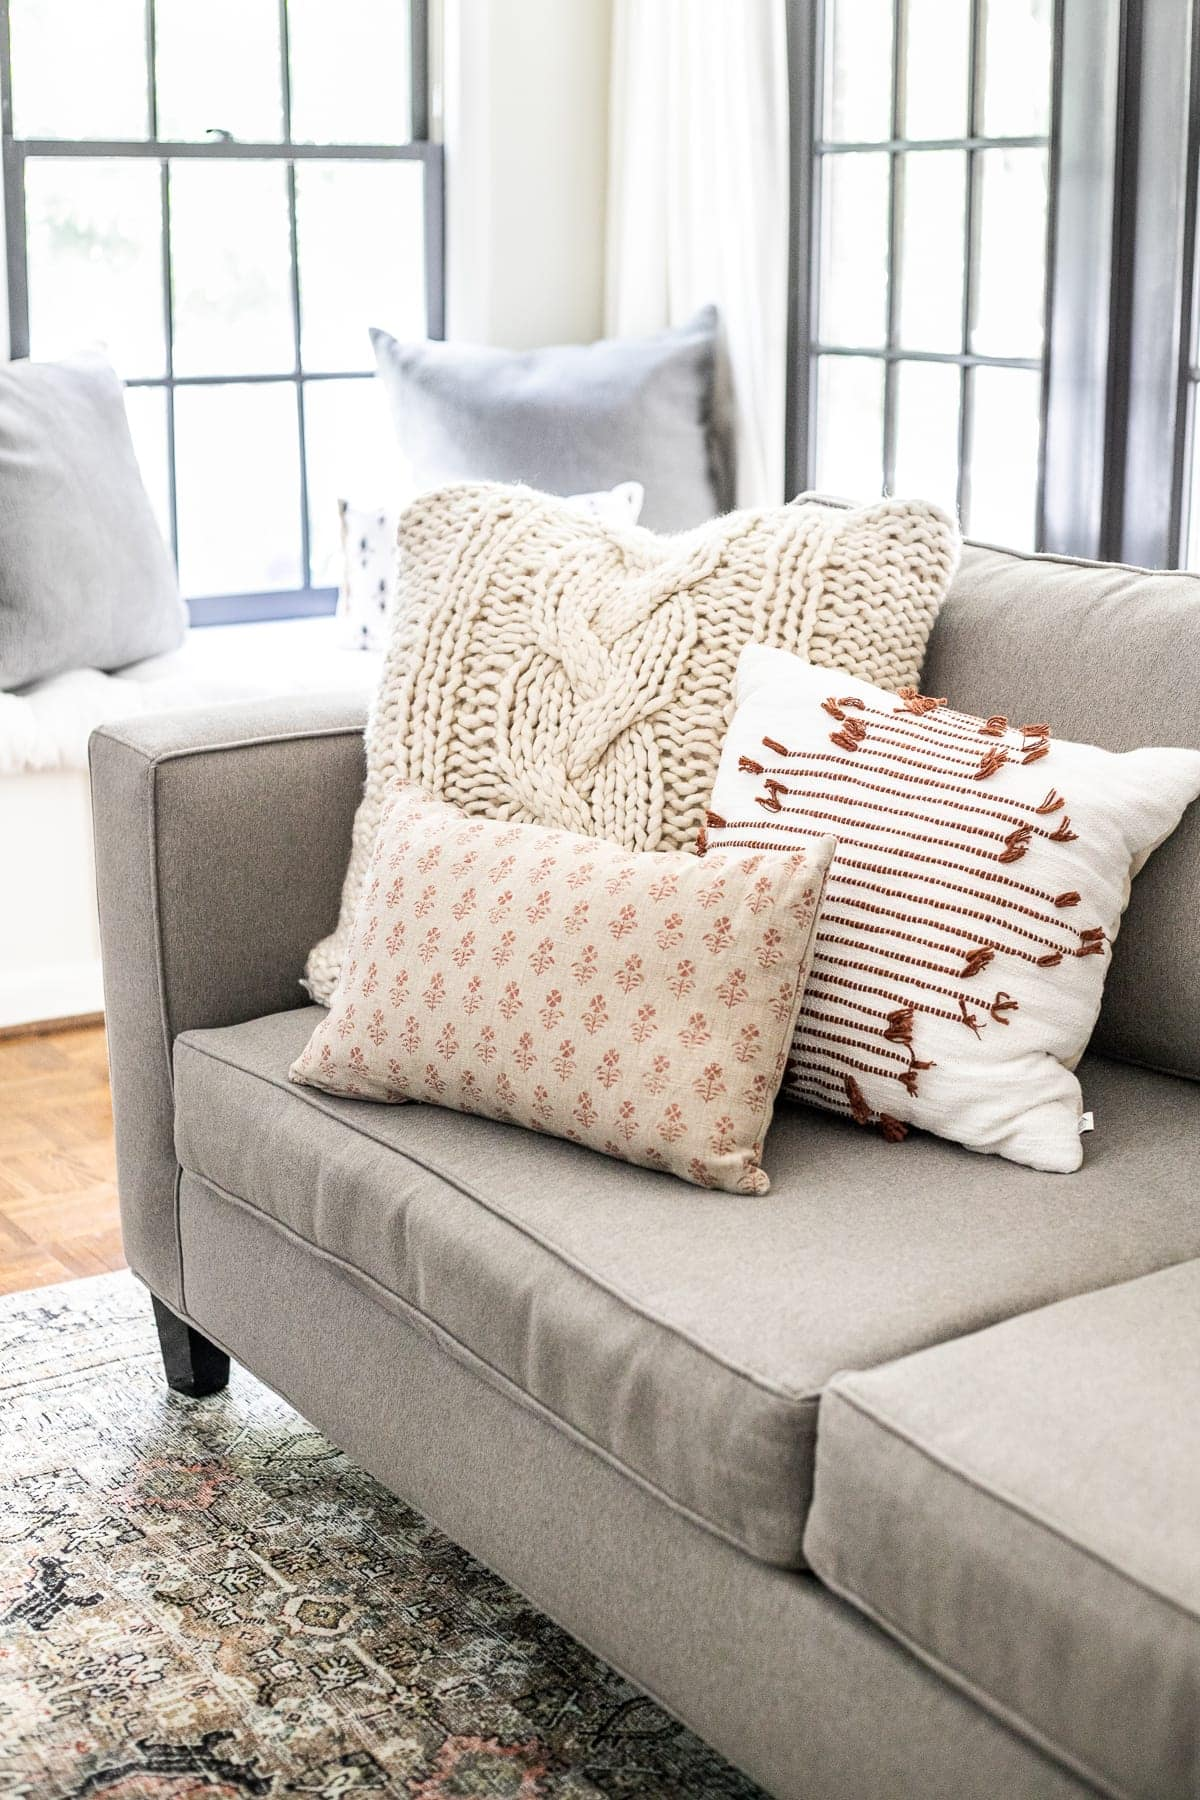 cable knit and rust colored fall throw pillows on sofa